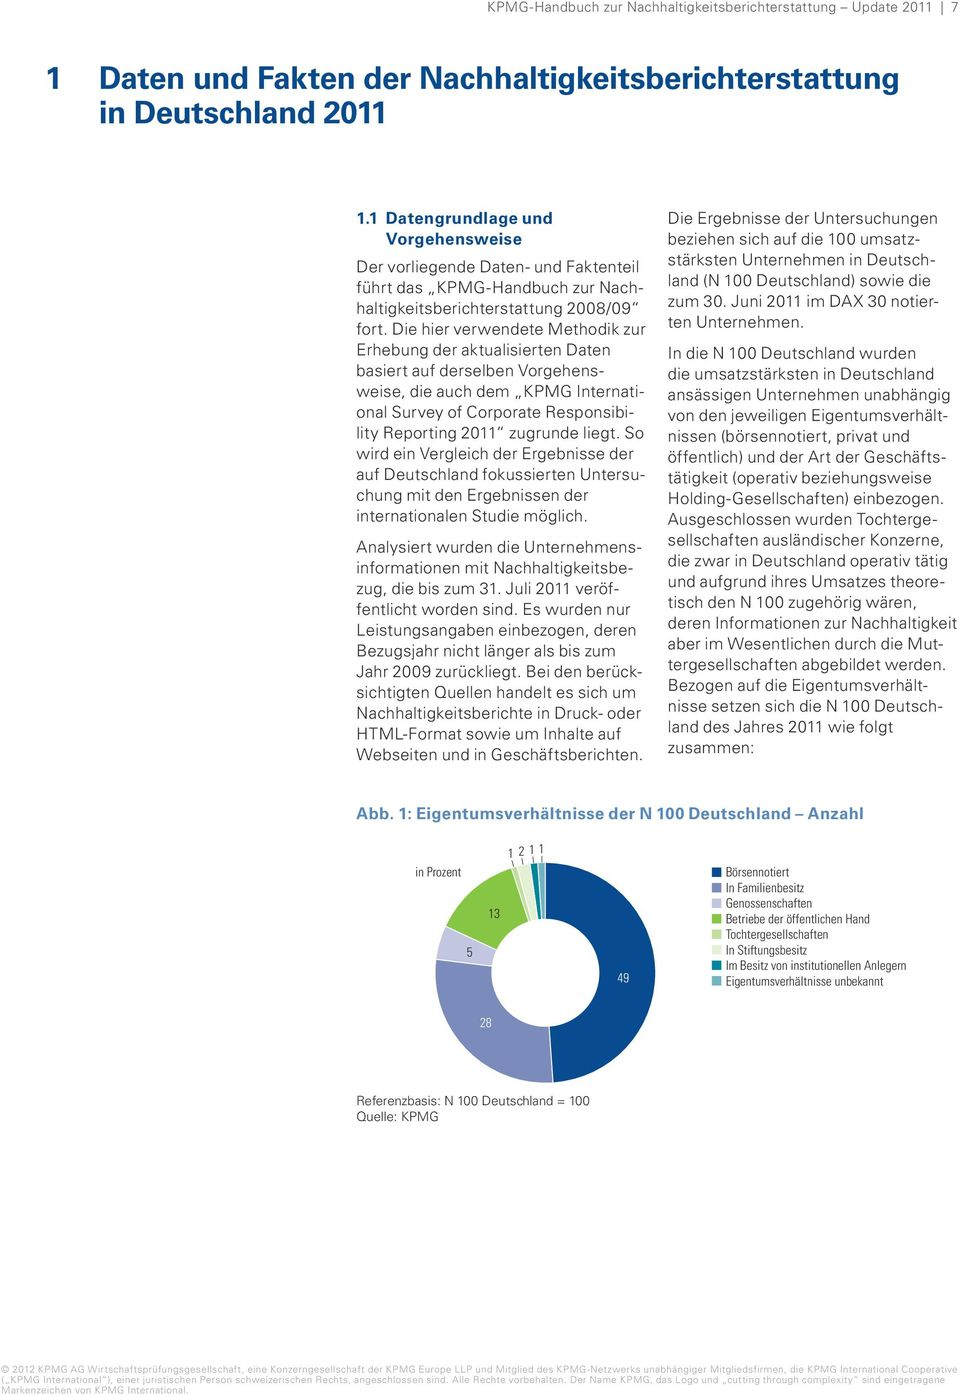 Die hier verwendete Methodik zur Erhebung der aktualisierten Daten basiert auf derselben Vorgehensweise, die auch dem KPMG International Survey of Corporate Responsibility Reporting 2011 zugrunde